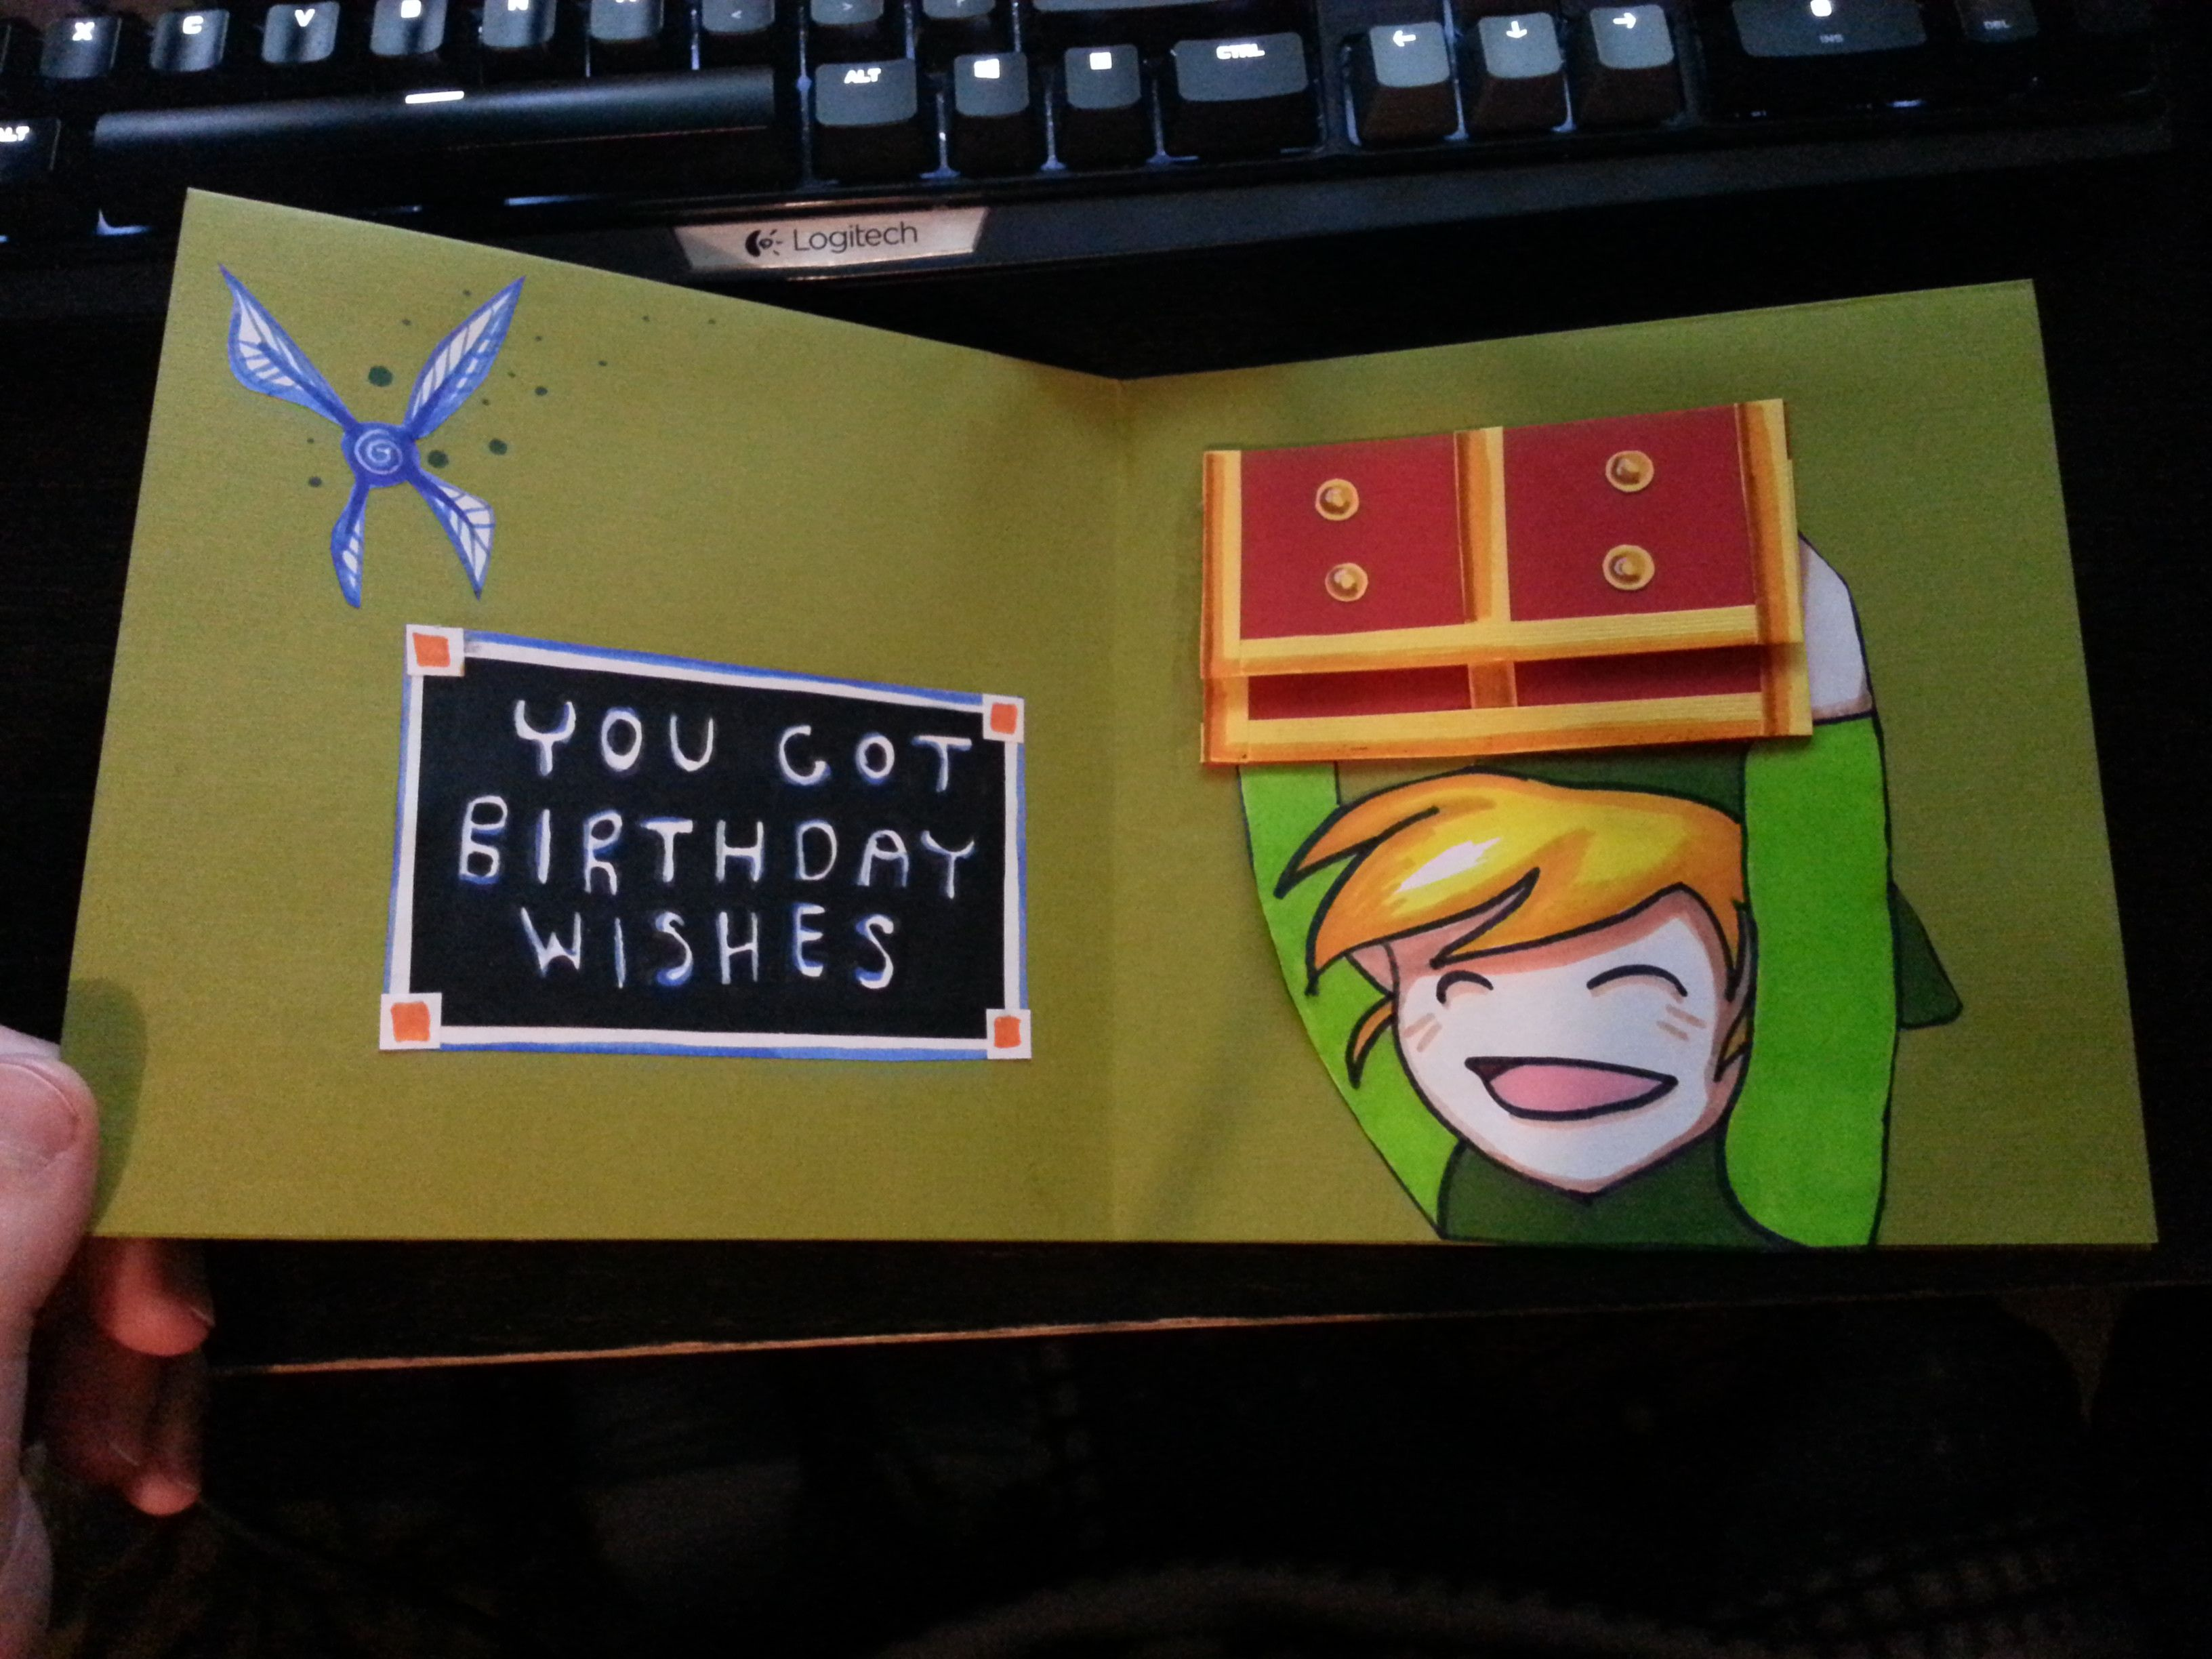 My Friend Made Me An Awesome Birthday Card!